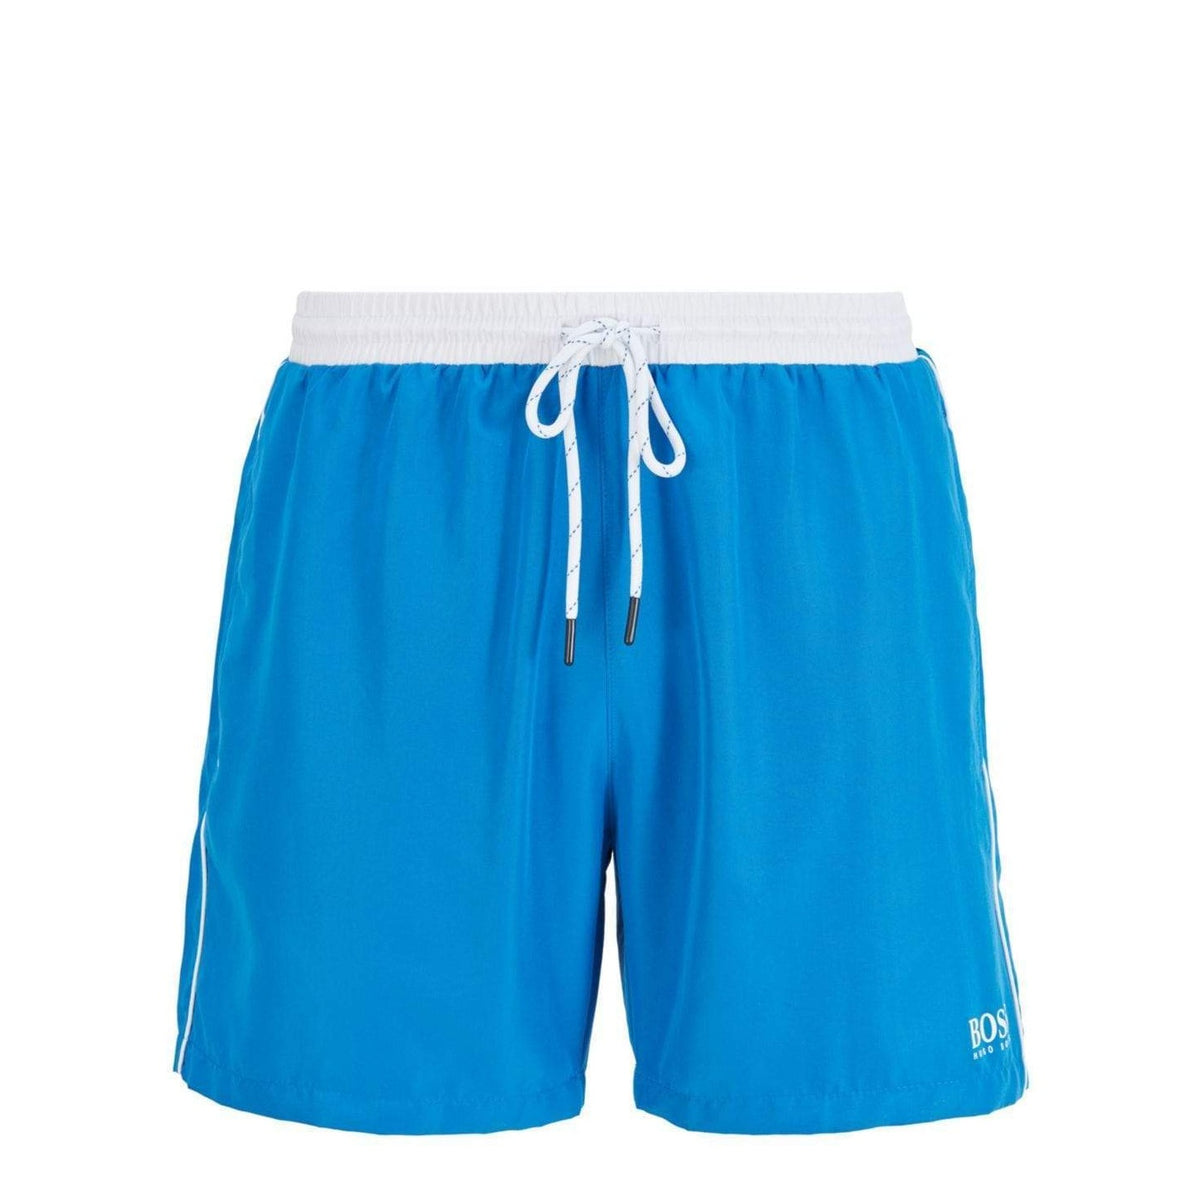 BOSS Swim Shorts In Quick-Drying Fabric